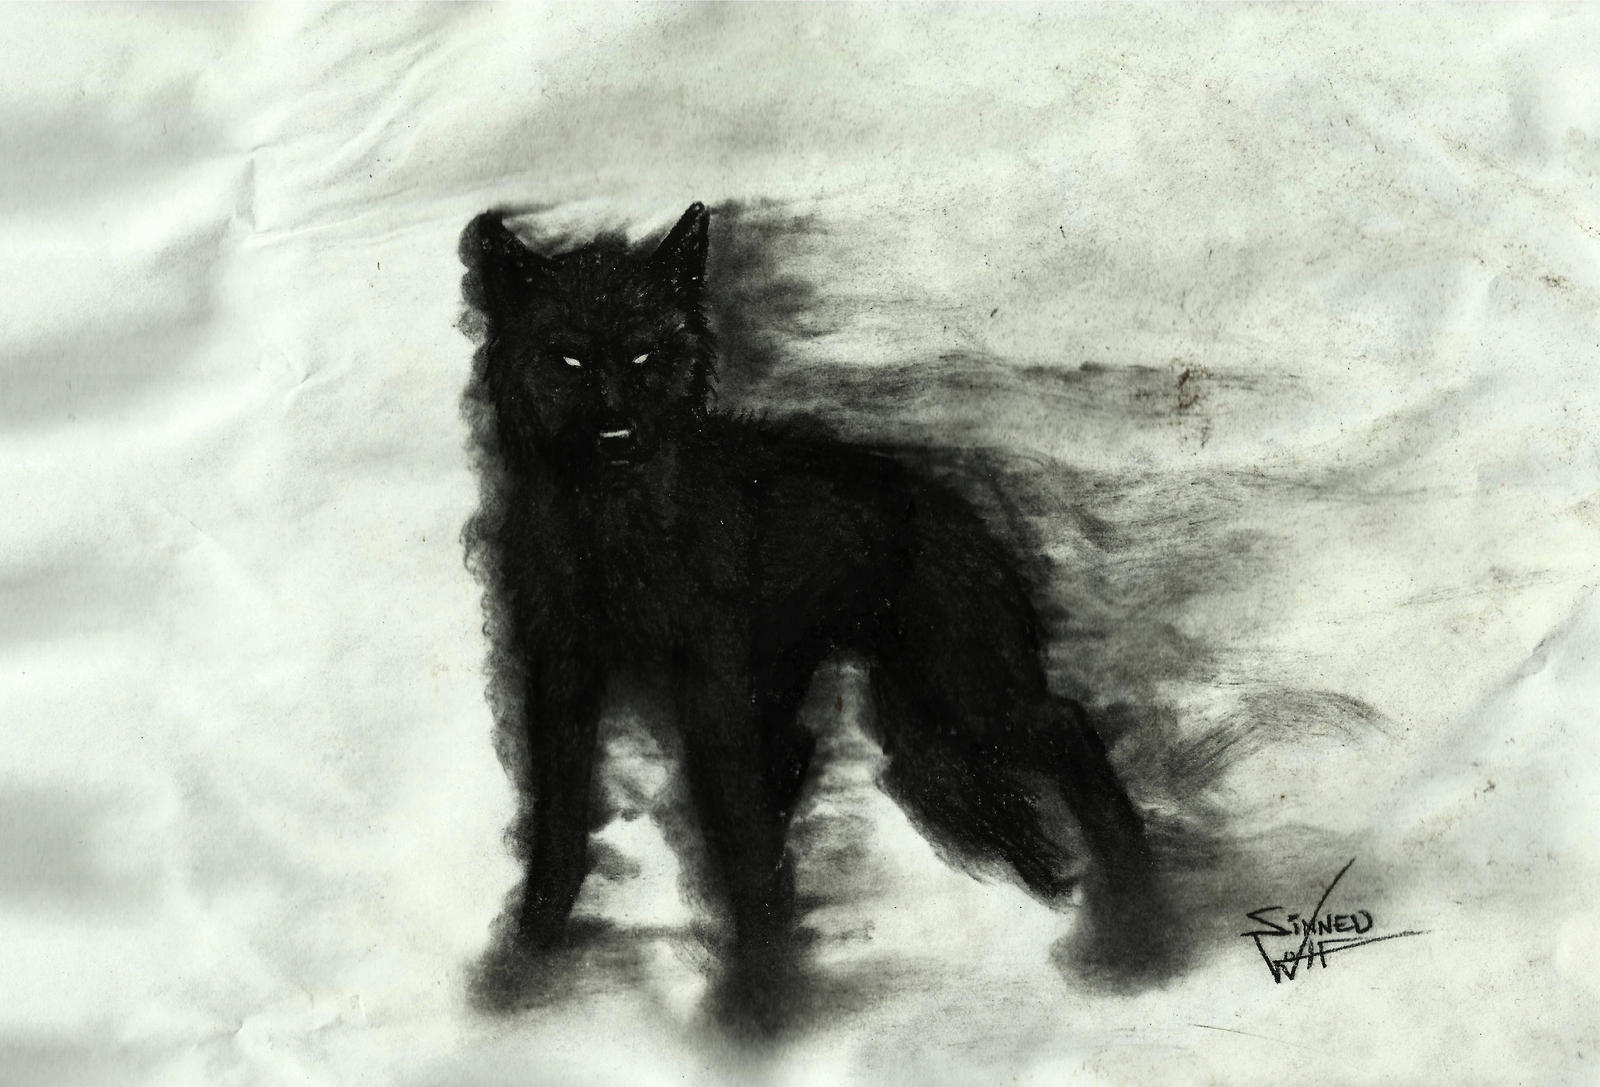 Demon dog by ~SinnedWolf